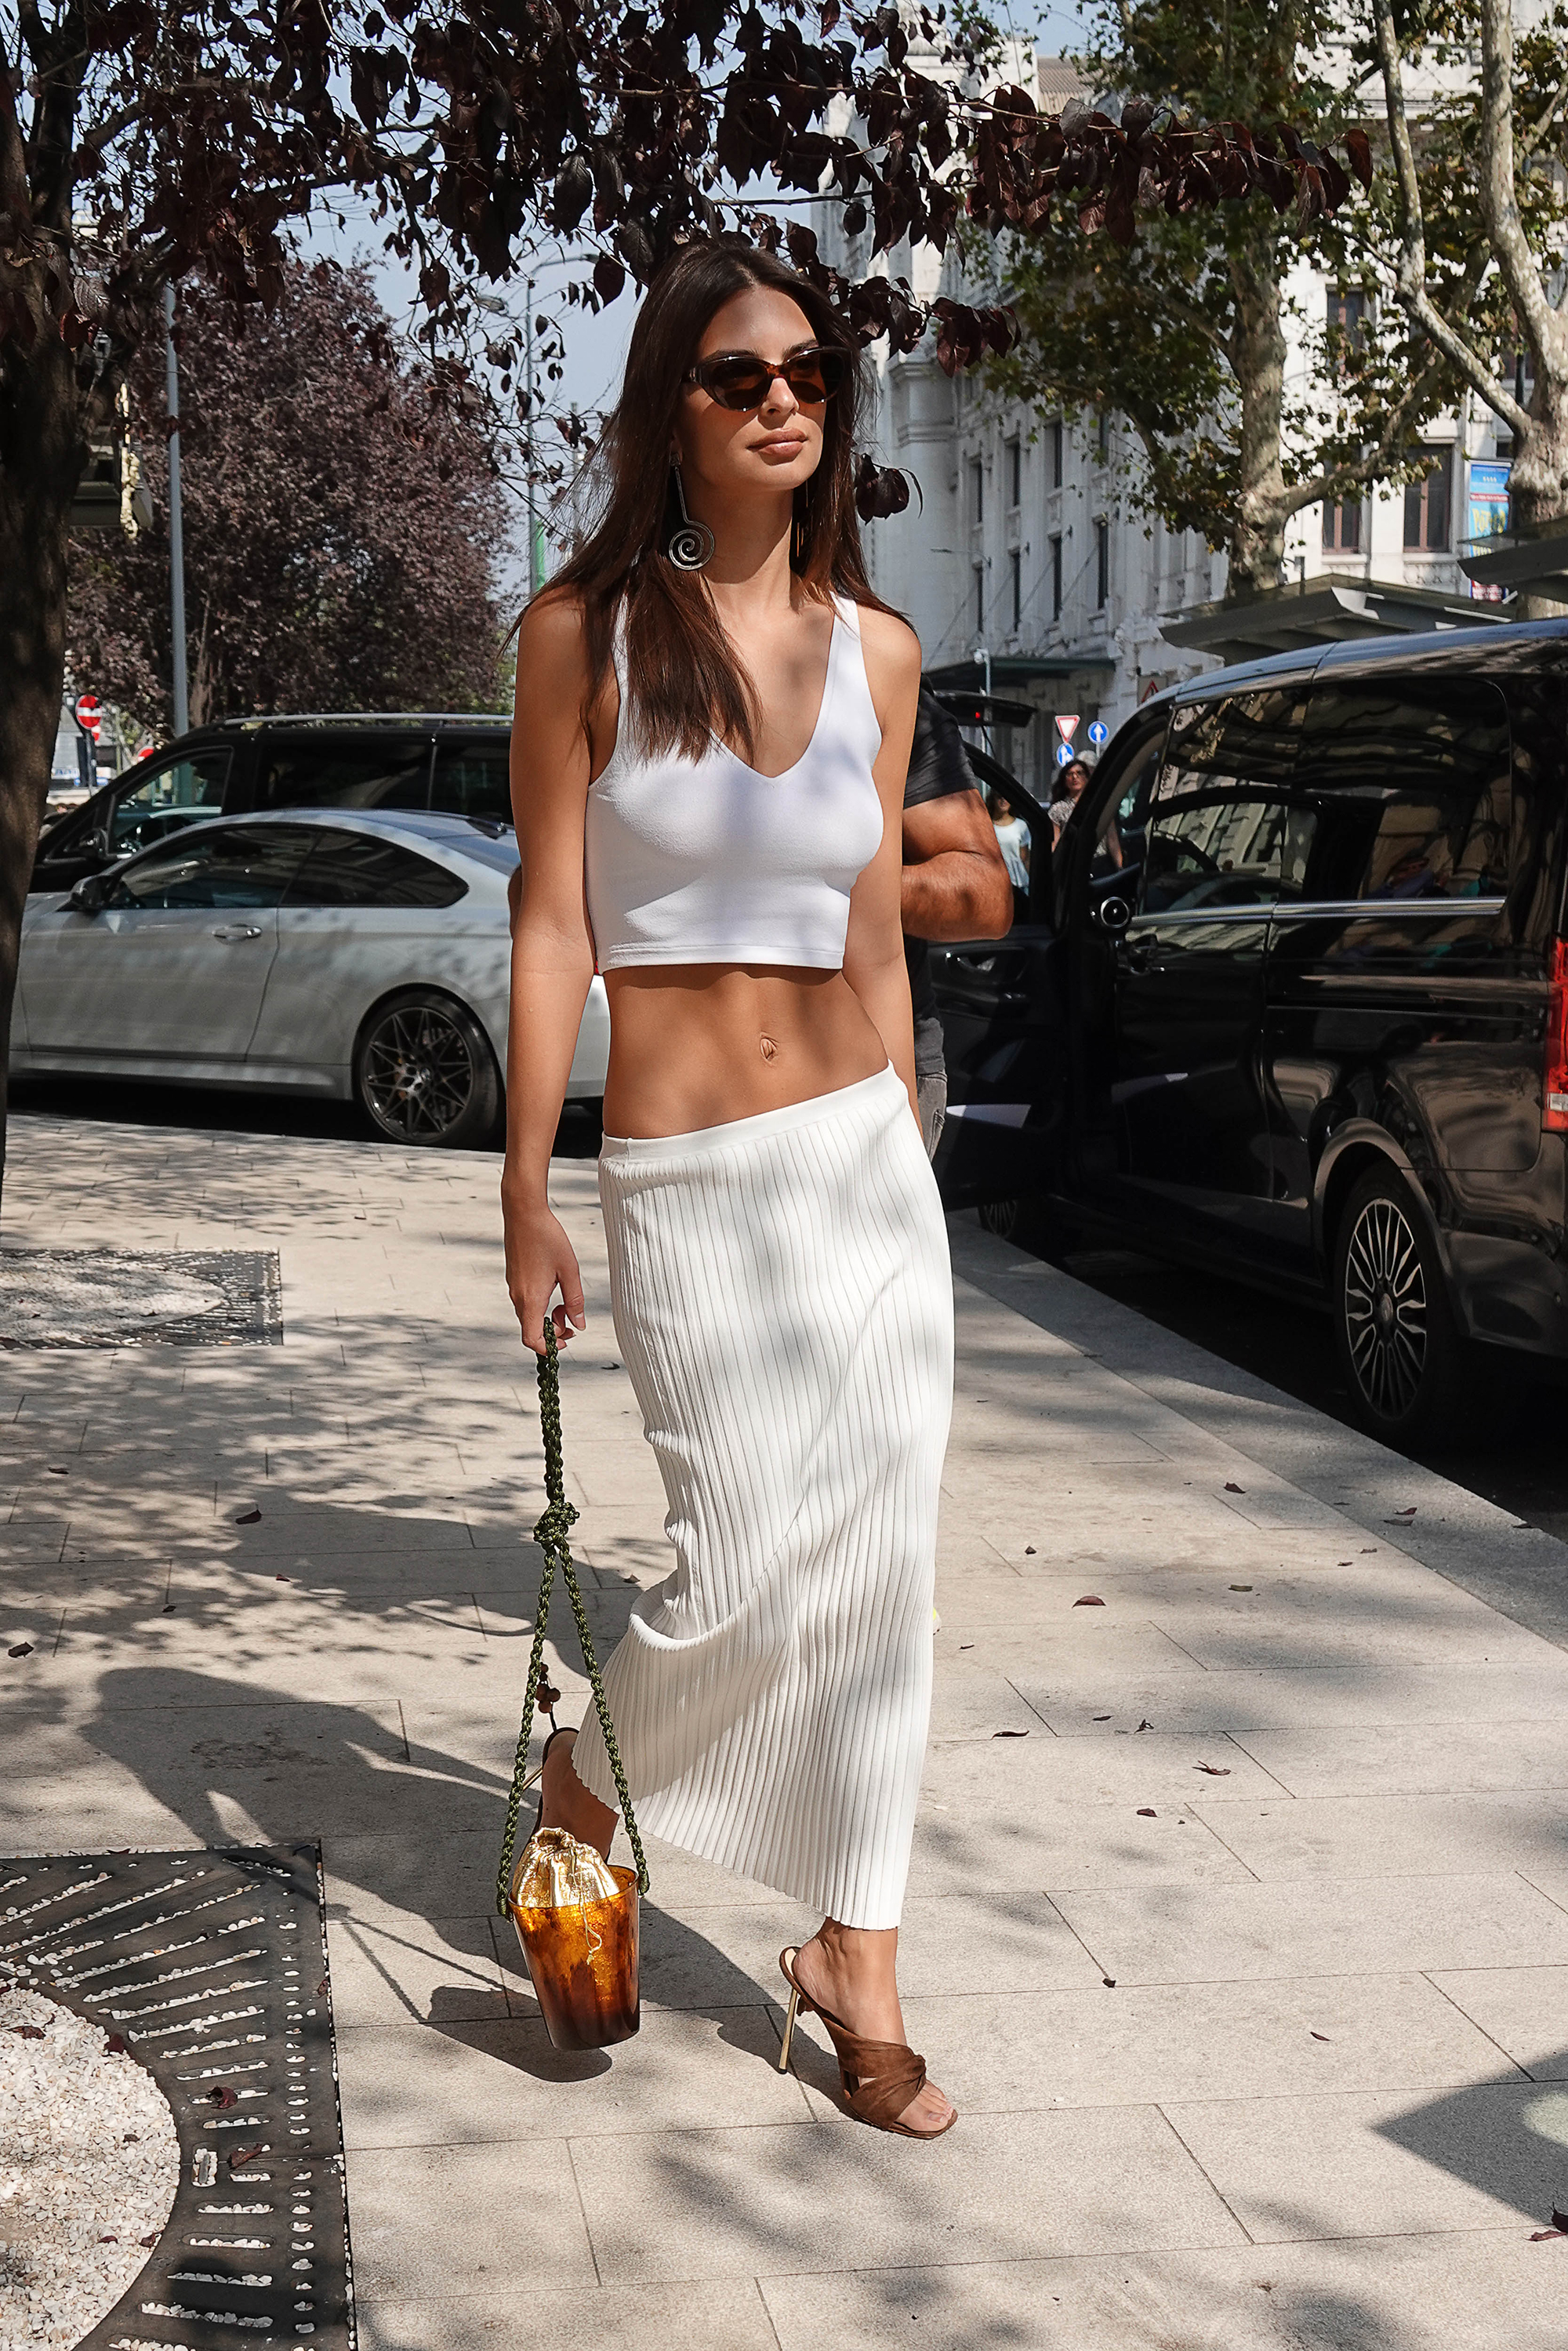 Emily Ratajkowski abs - Sightseeing in Milan required an easy, breezy outfit.